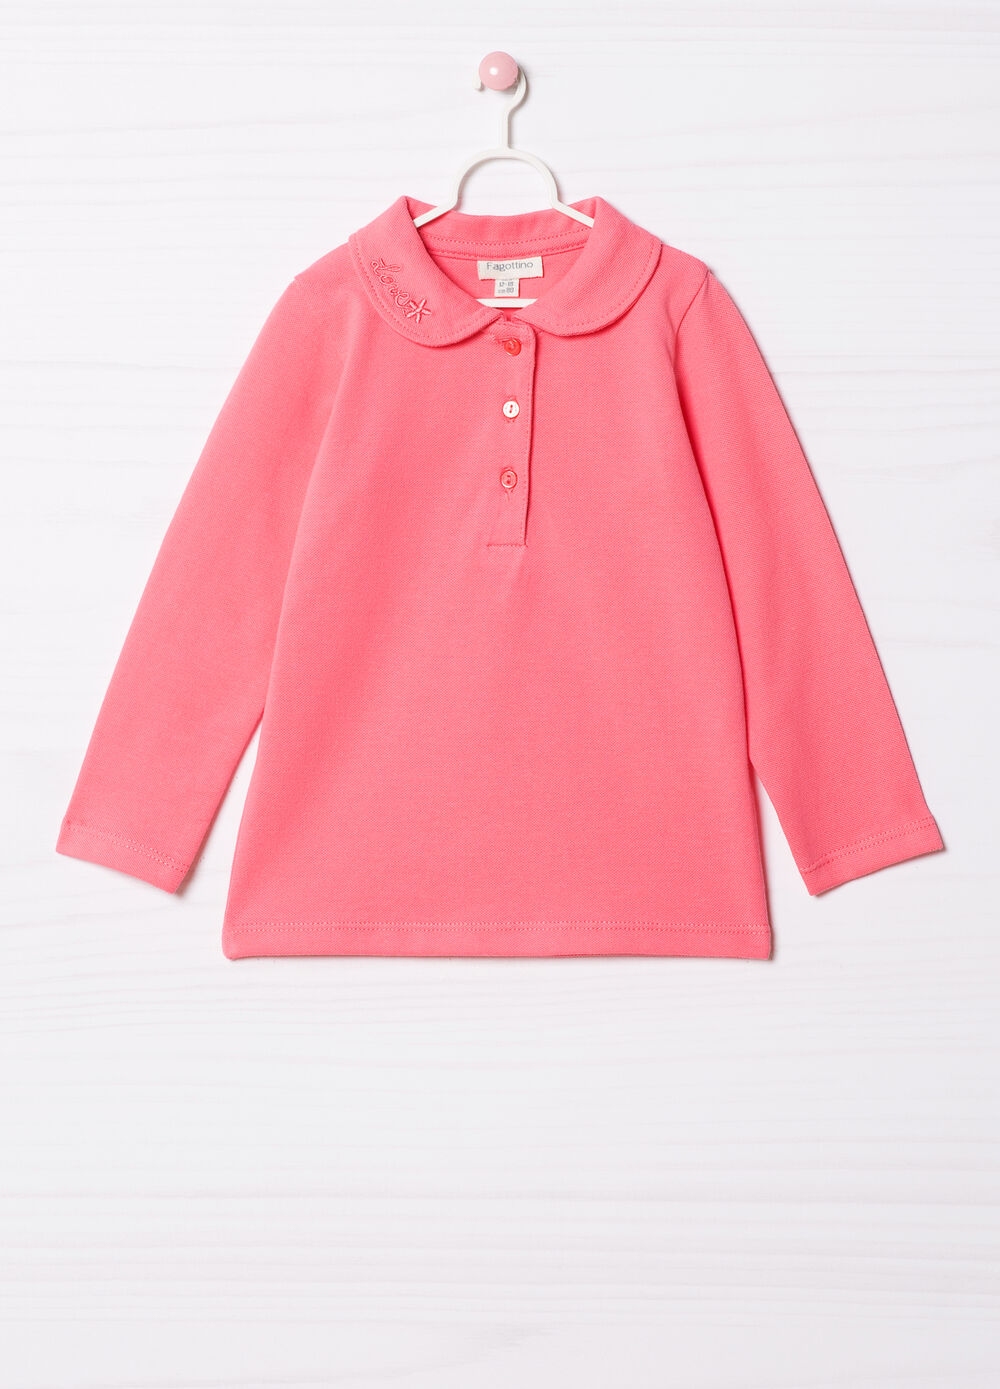 Stretch cotton polo shirt with embroidery.